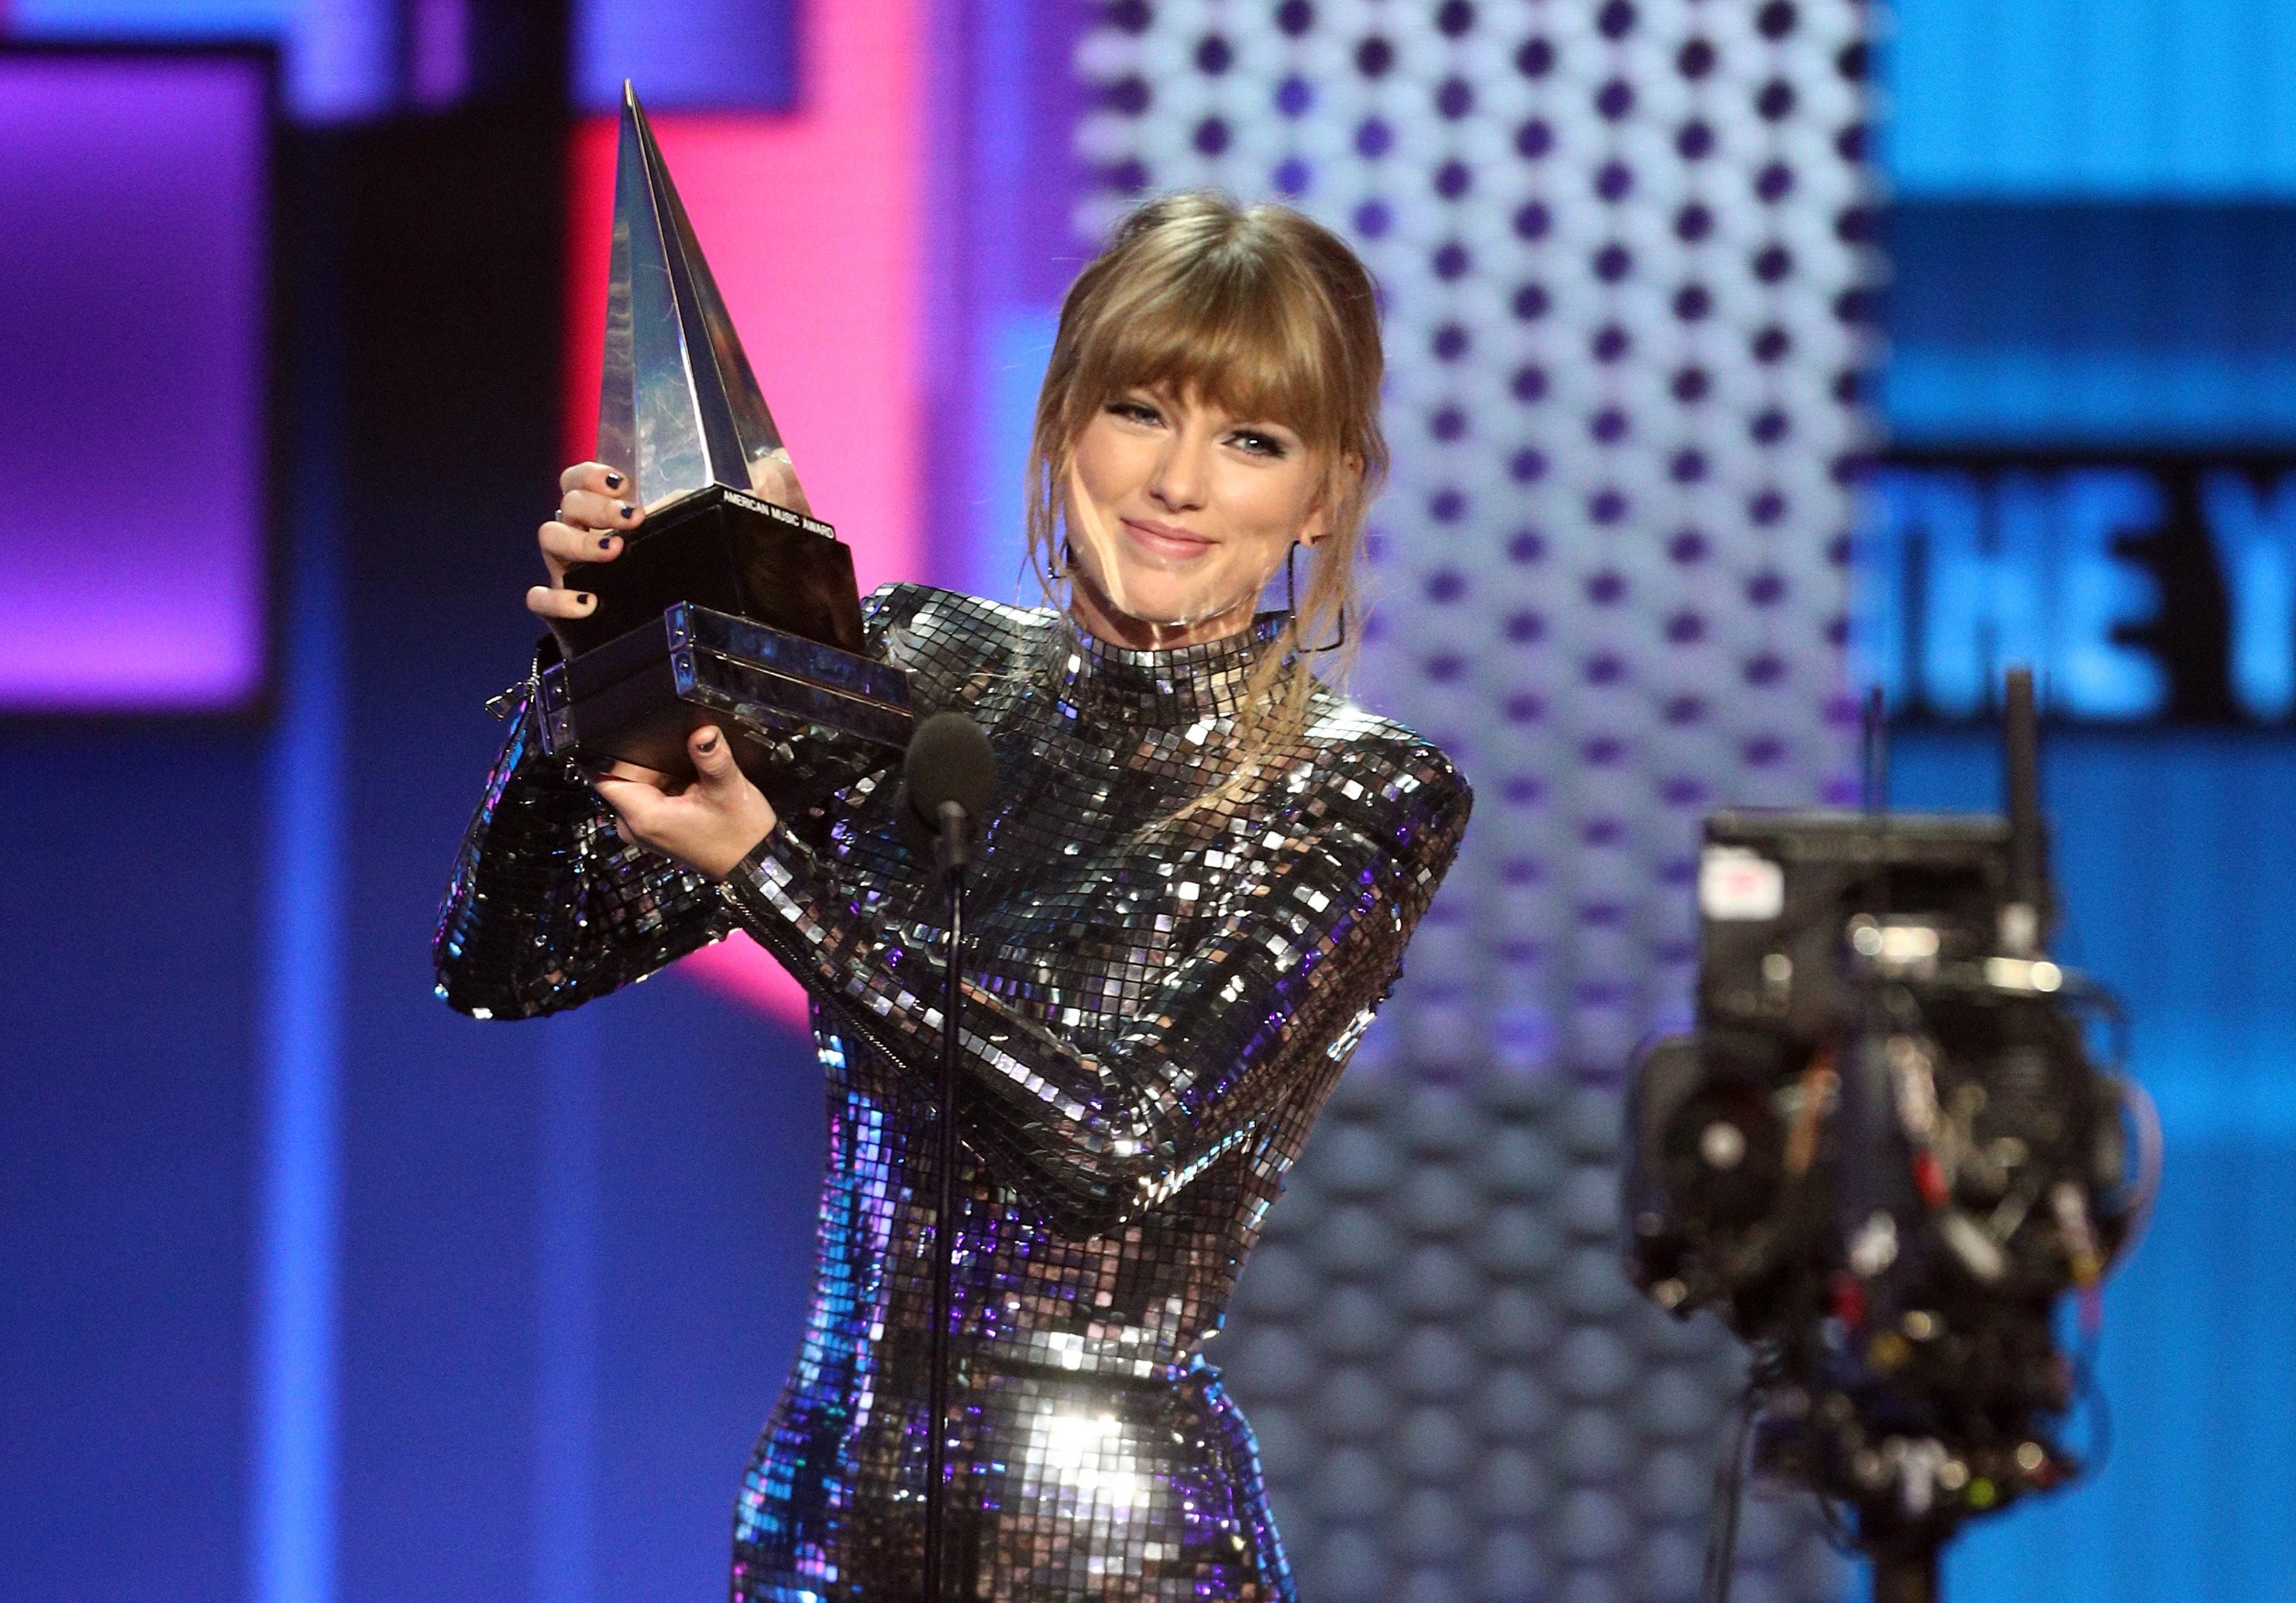 Taylor-Swift-wins-big-at-AMAs,-urges-fans-to-vote